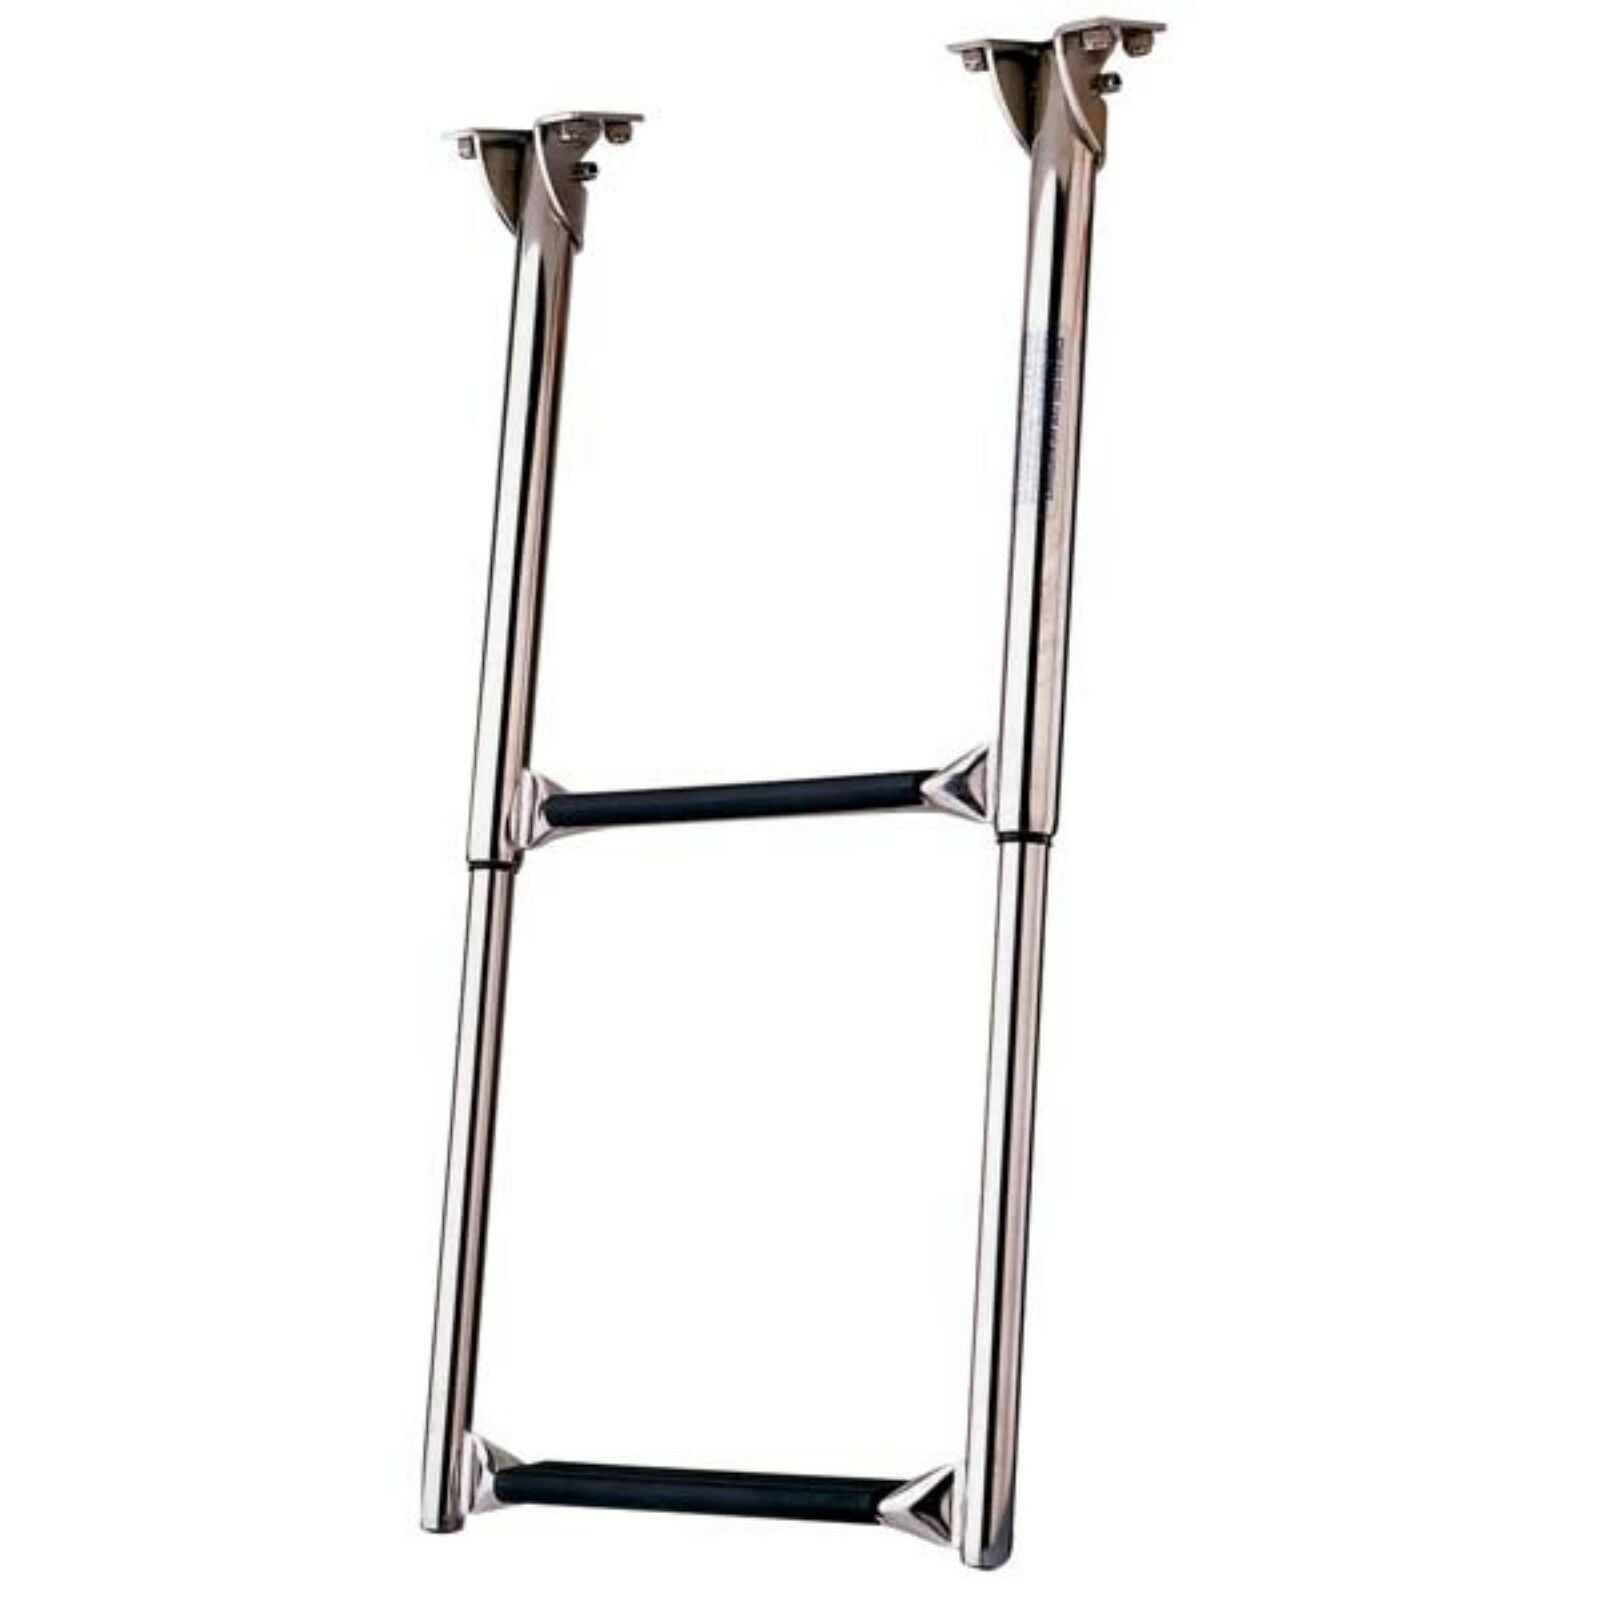 Garelick Out Of Sight Telescoping Ladder 2 Steps